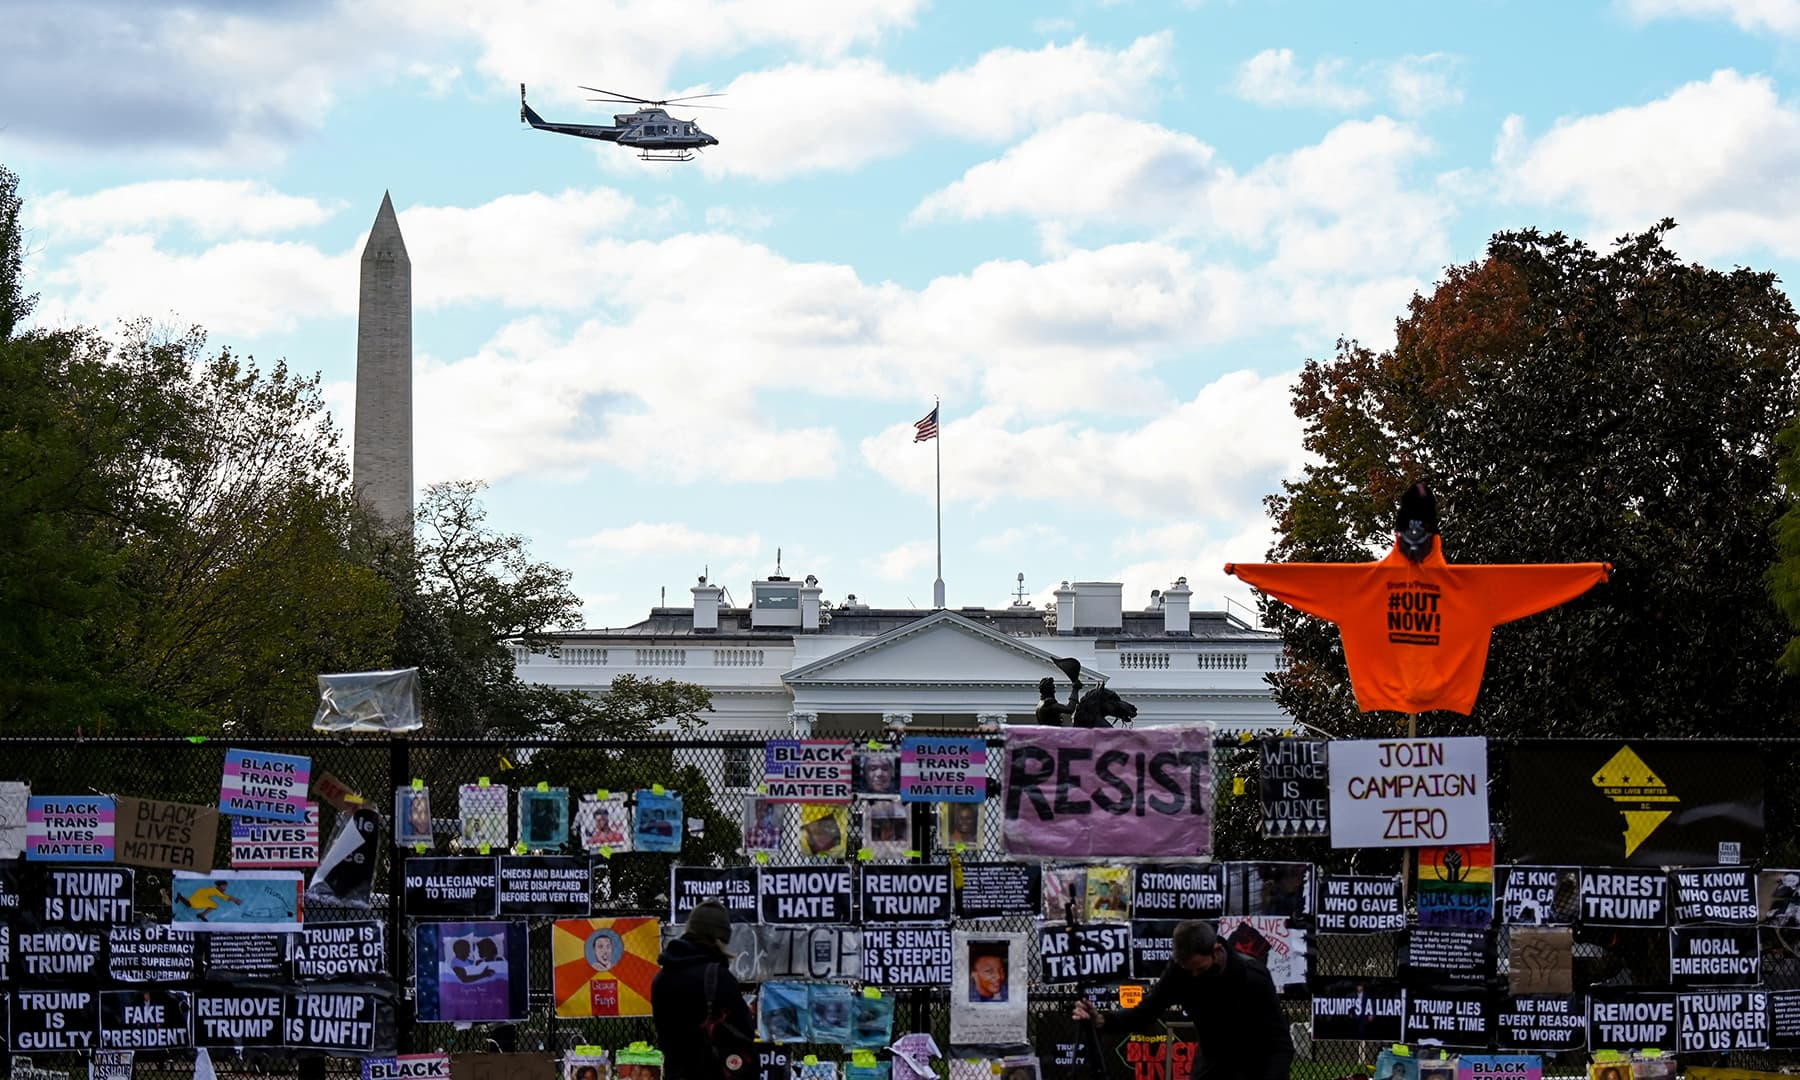 A helicopter passes over the White House, seen behind a fence and protest posters, the day before the US presidential election in Washington, DC, November 2. — Reuters